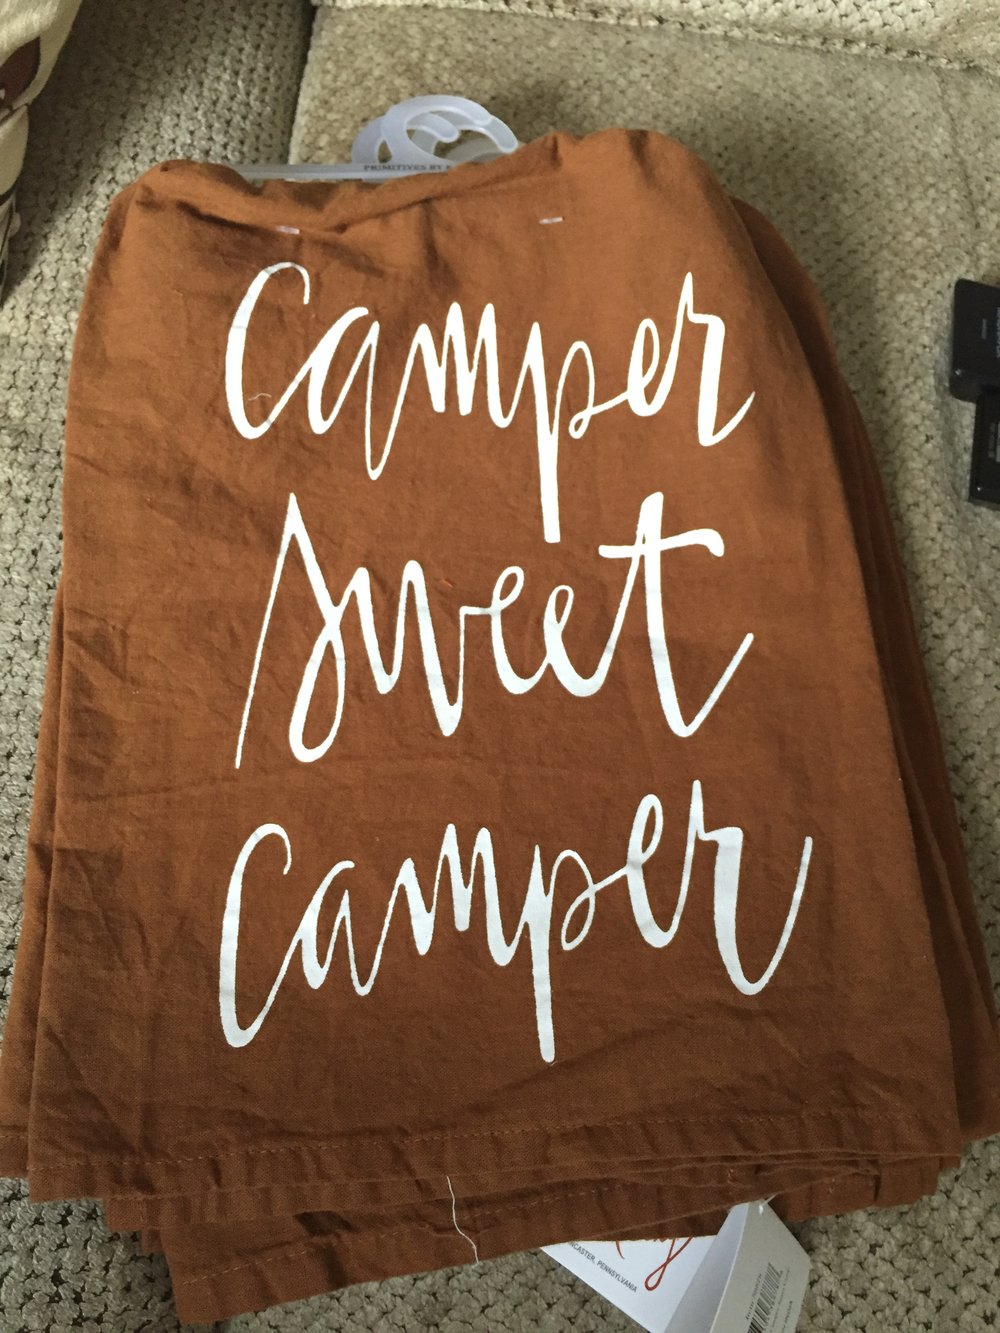 Cotton kitchen towel in brown featuring white printed text.  Perfect for your camper!  These are all new with tags and make great gifts! $12 shipped.